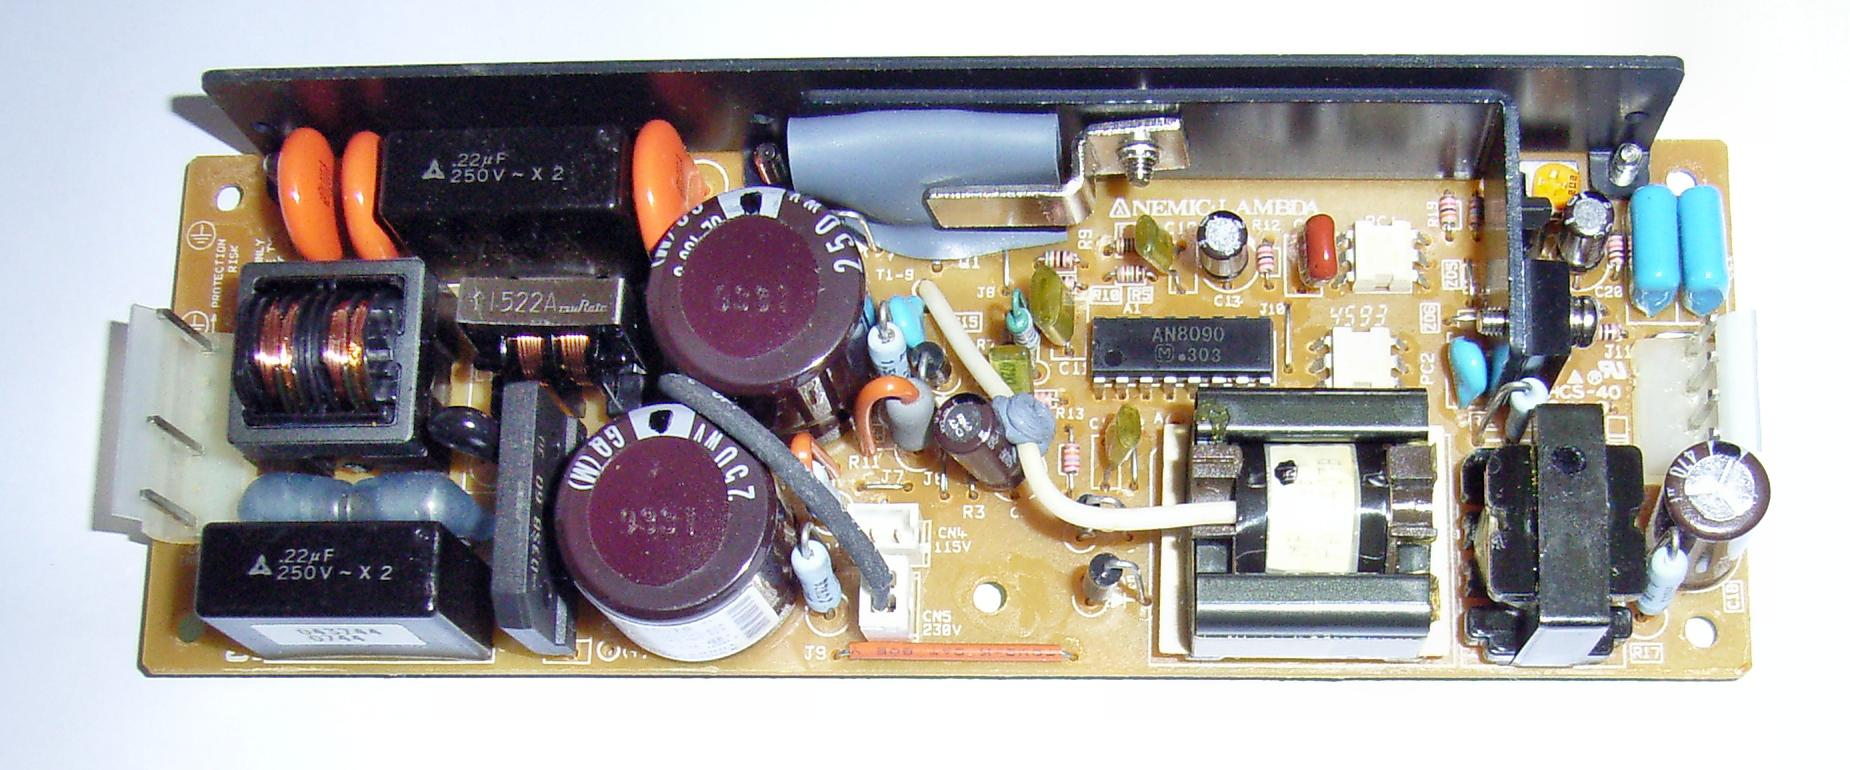 This should be Power-supply-2.jpeg.  Is it missing?